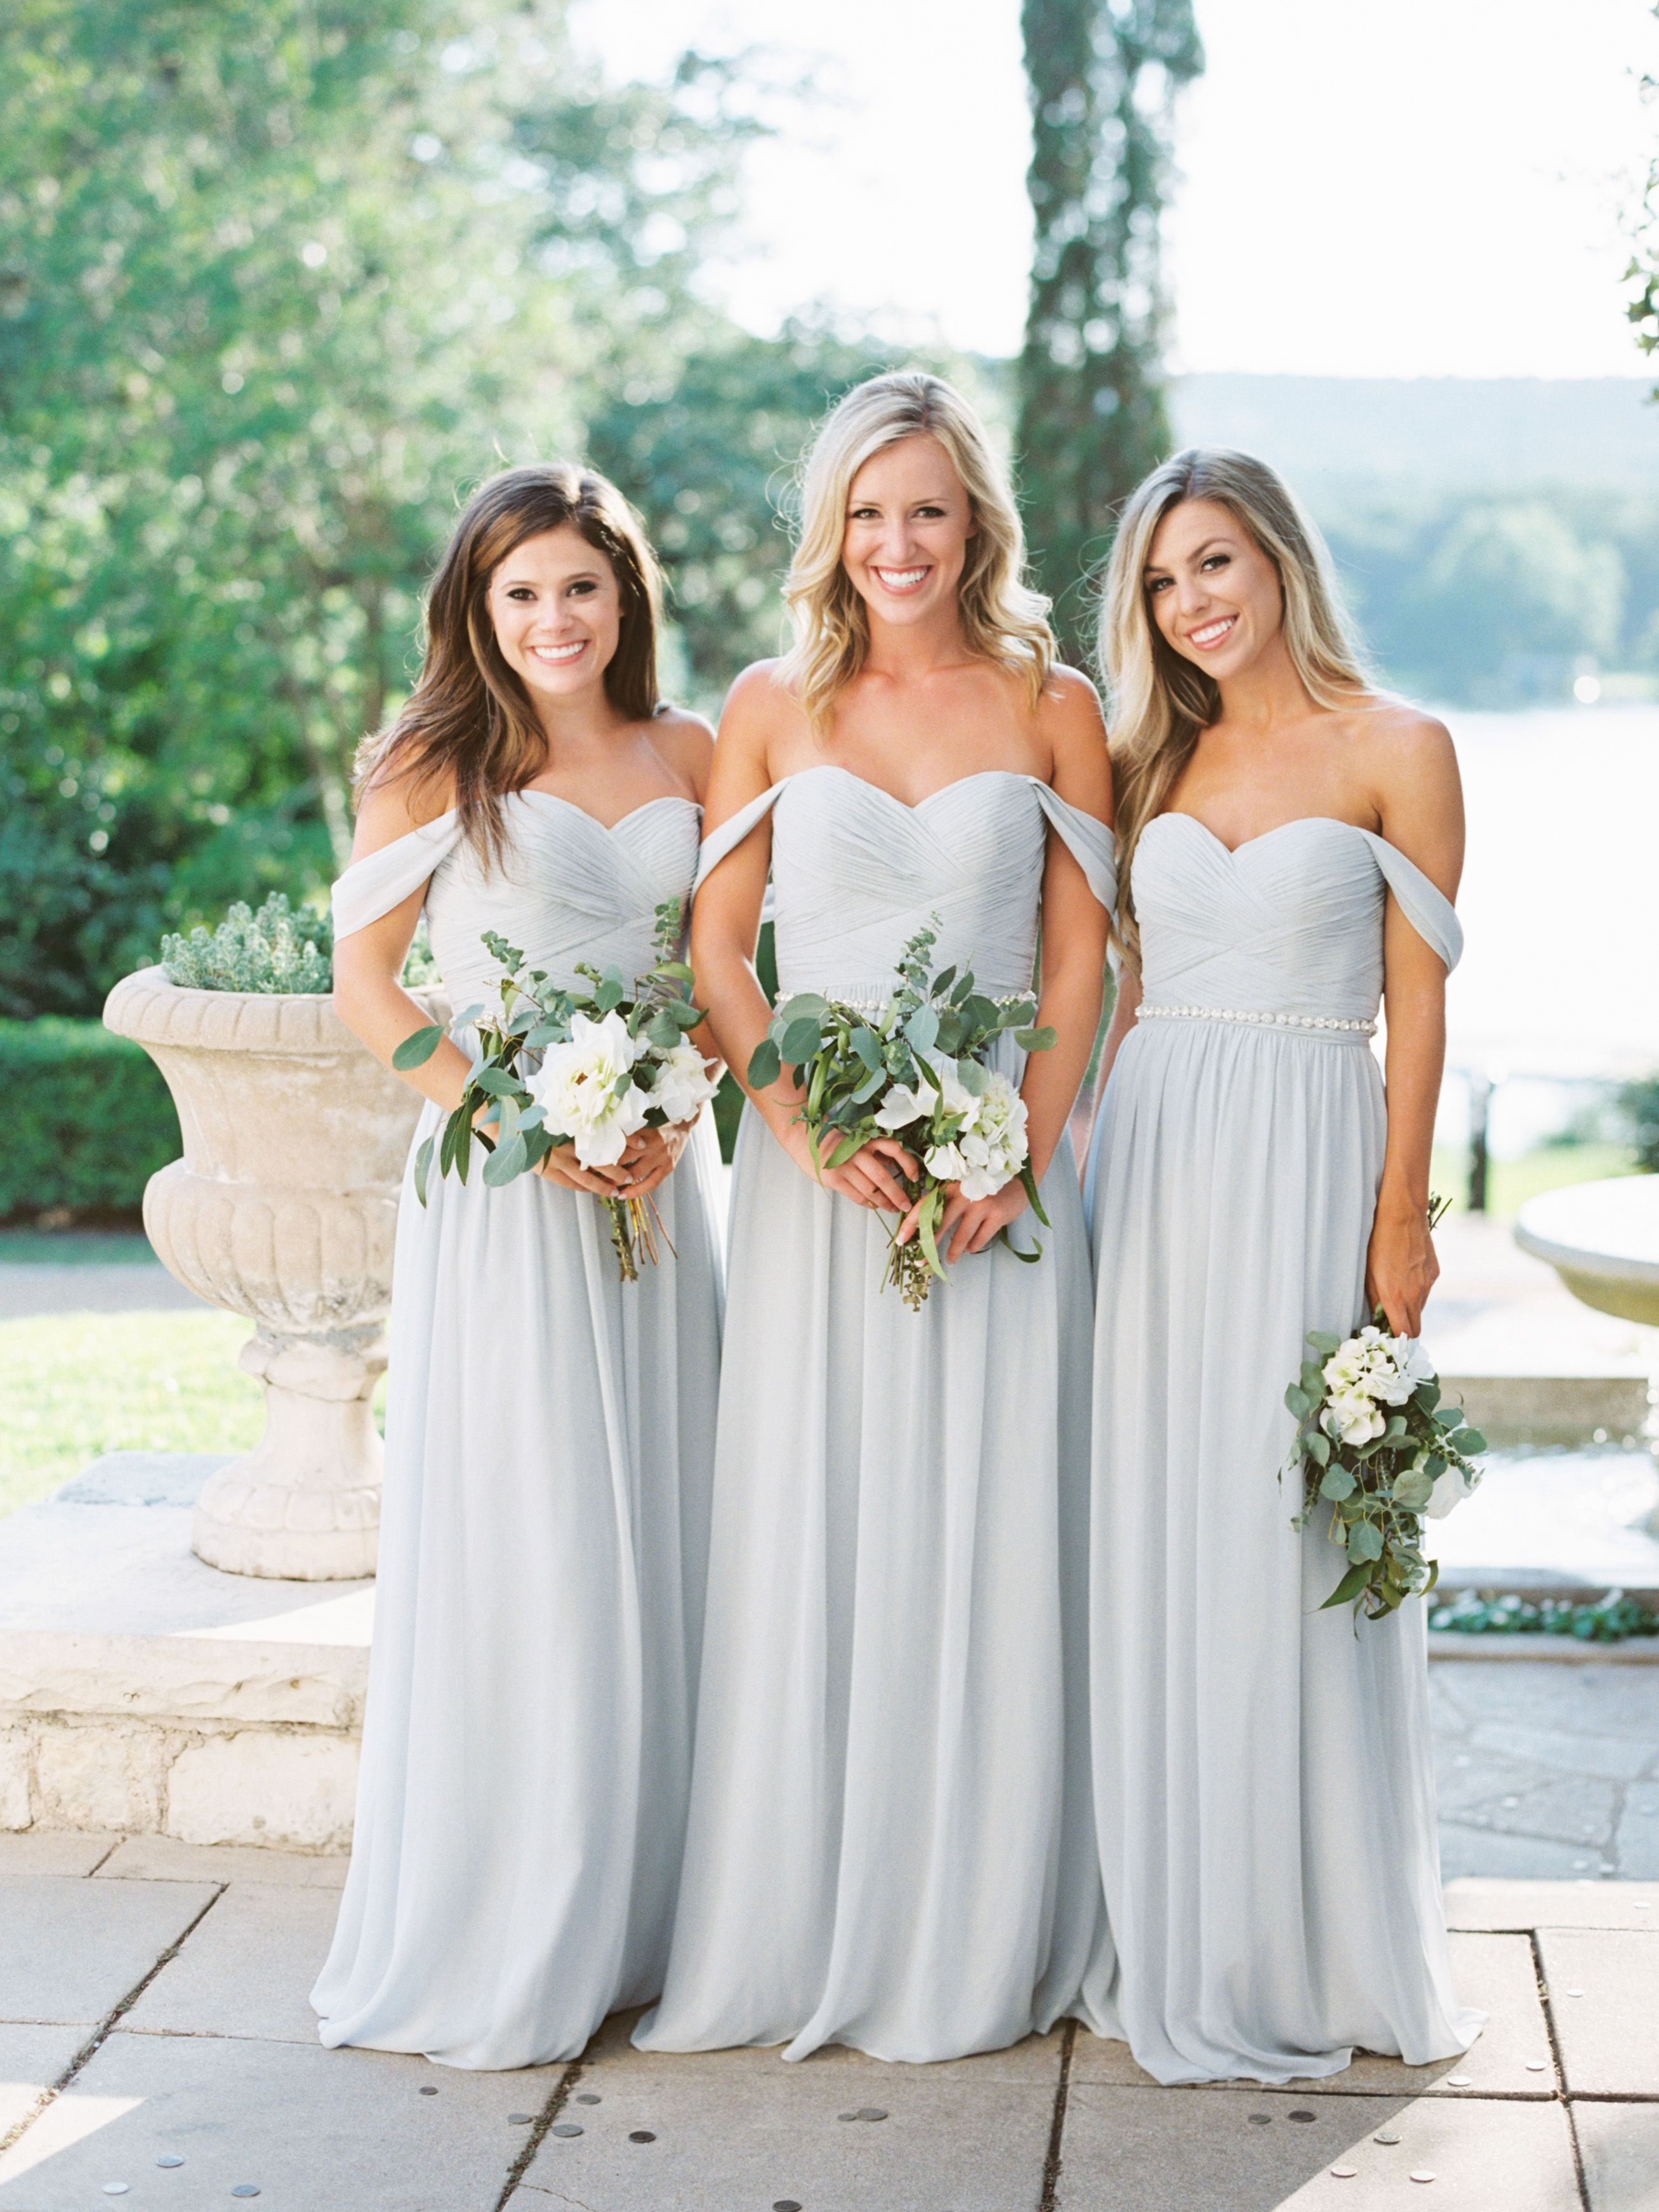 527ef370f9e4e Chiffon Bridesmaid Dresses in Dove Grey From Shop Revelry! It's hard to top  the romantic and adaptable Kennedy convertible. This flowing, A-line  chiffon ...